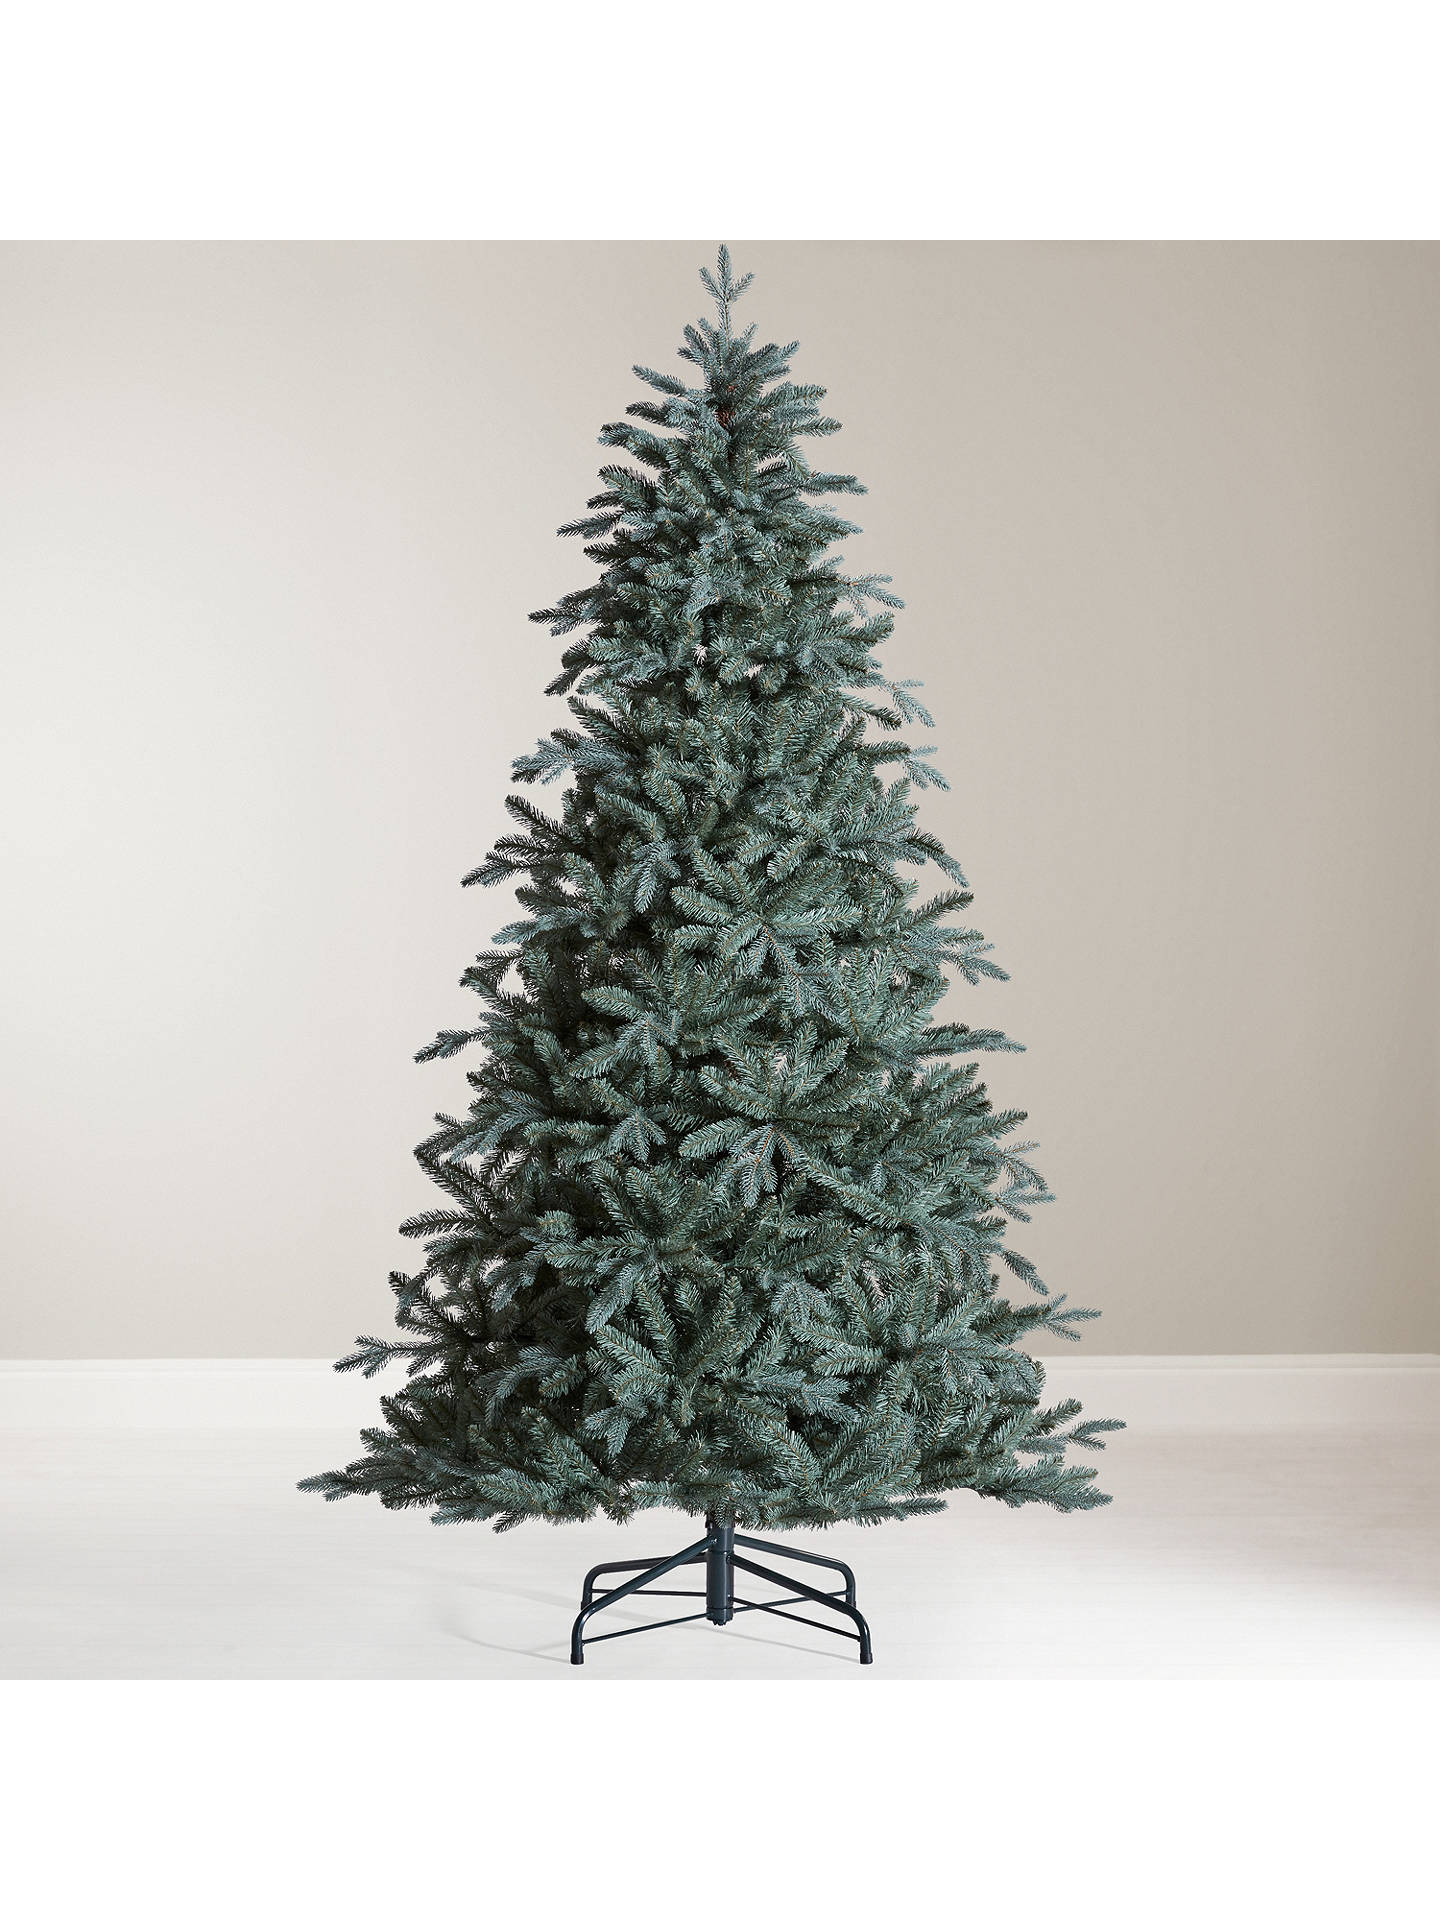 John Lewis Christmas Tree.John Lewis Partners Serbian Blue Spruce Unlit Christmas Tree 7ft